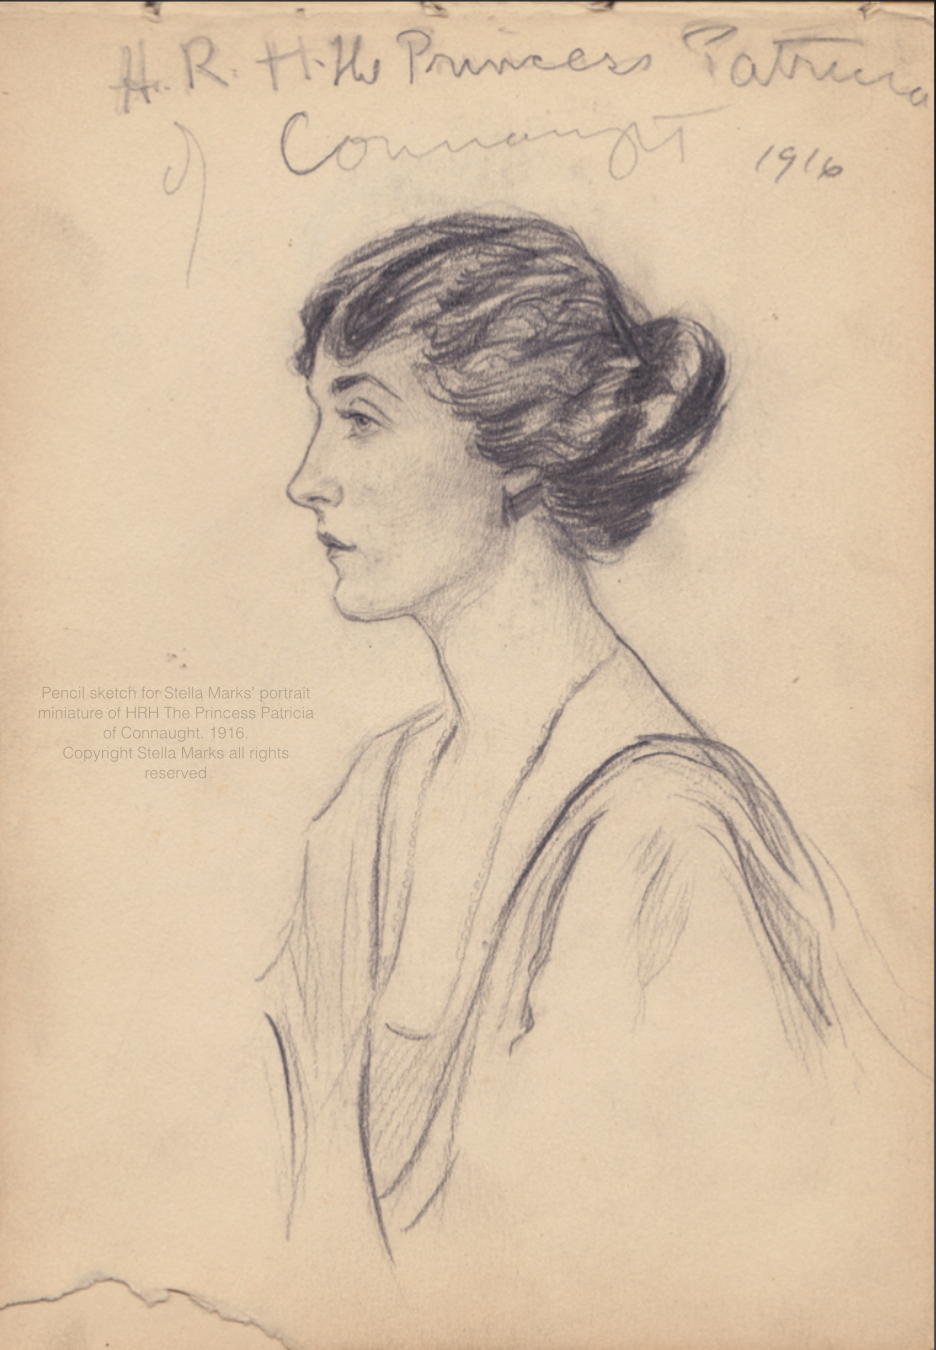 Pencil sketch for Stella Marks' portrait miniature of H.R.H. The Princess Patricia of Connaught, 1916. Copyright Stella Marks' Estate all rights reserved. Private collection.